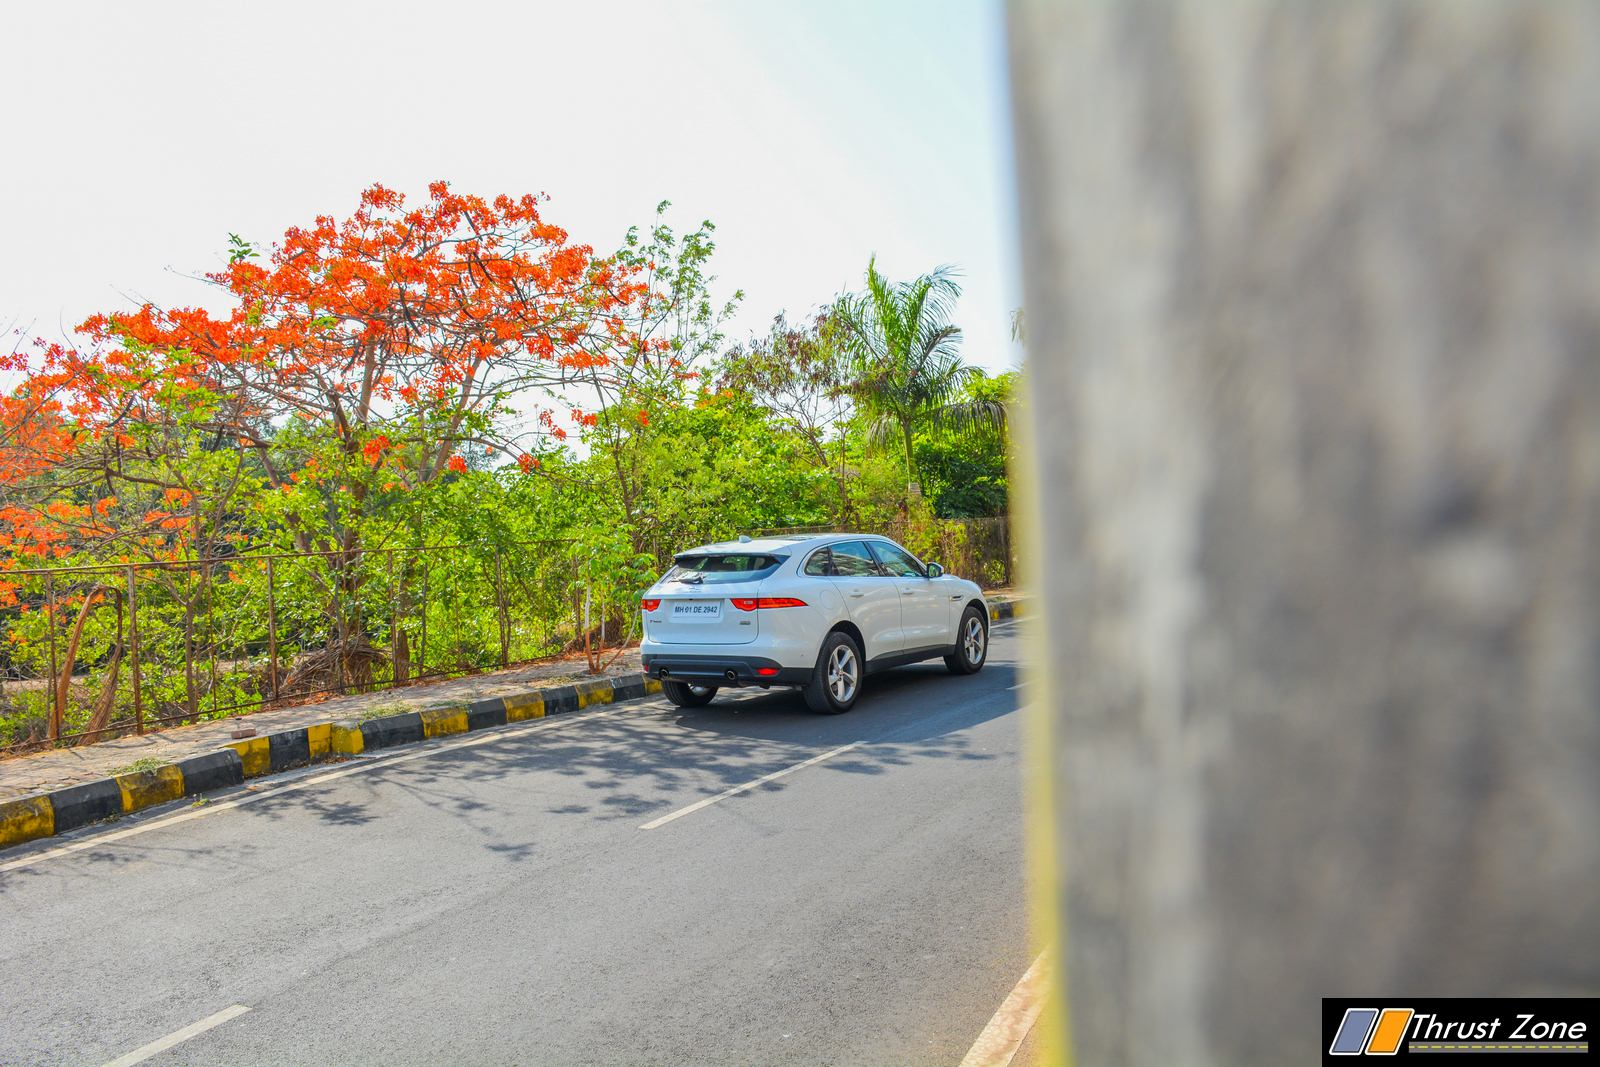 https://www.thrustzone.com/wp-content/uploads/2019/07/2019-Jaguar-F-Pace-Petrol-India-Prestige-Review-13.jpg